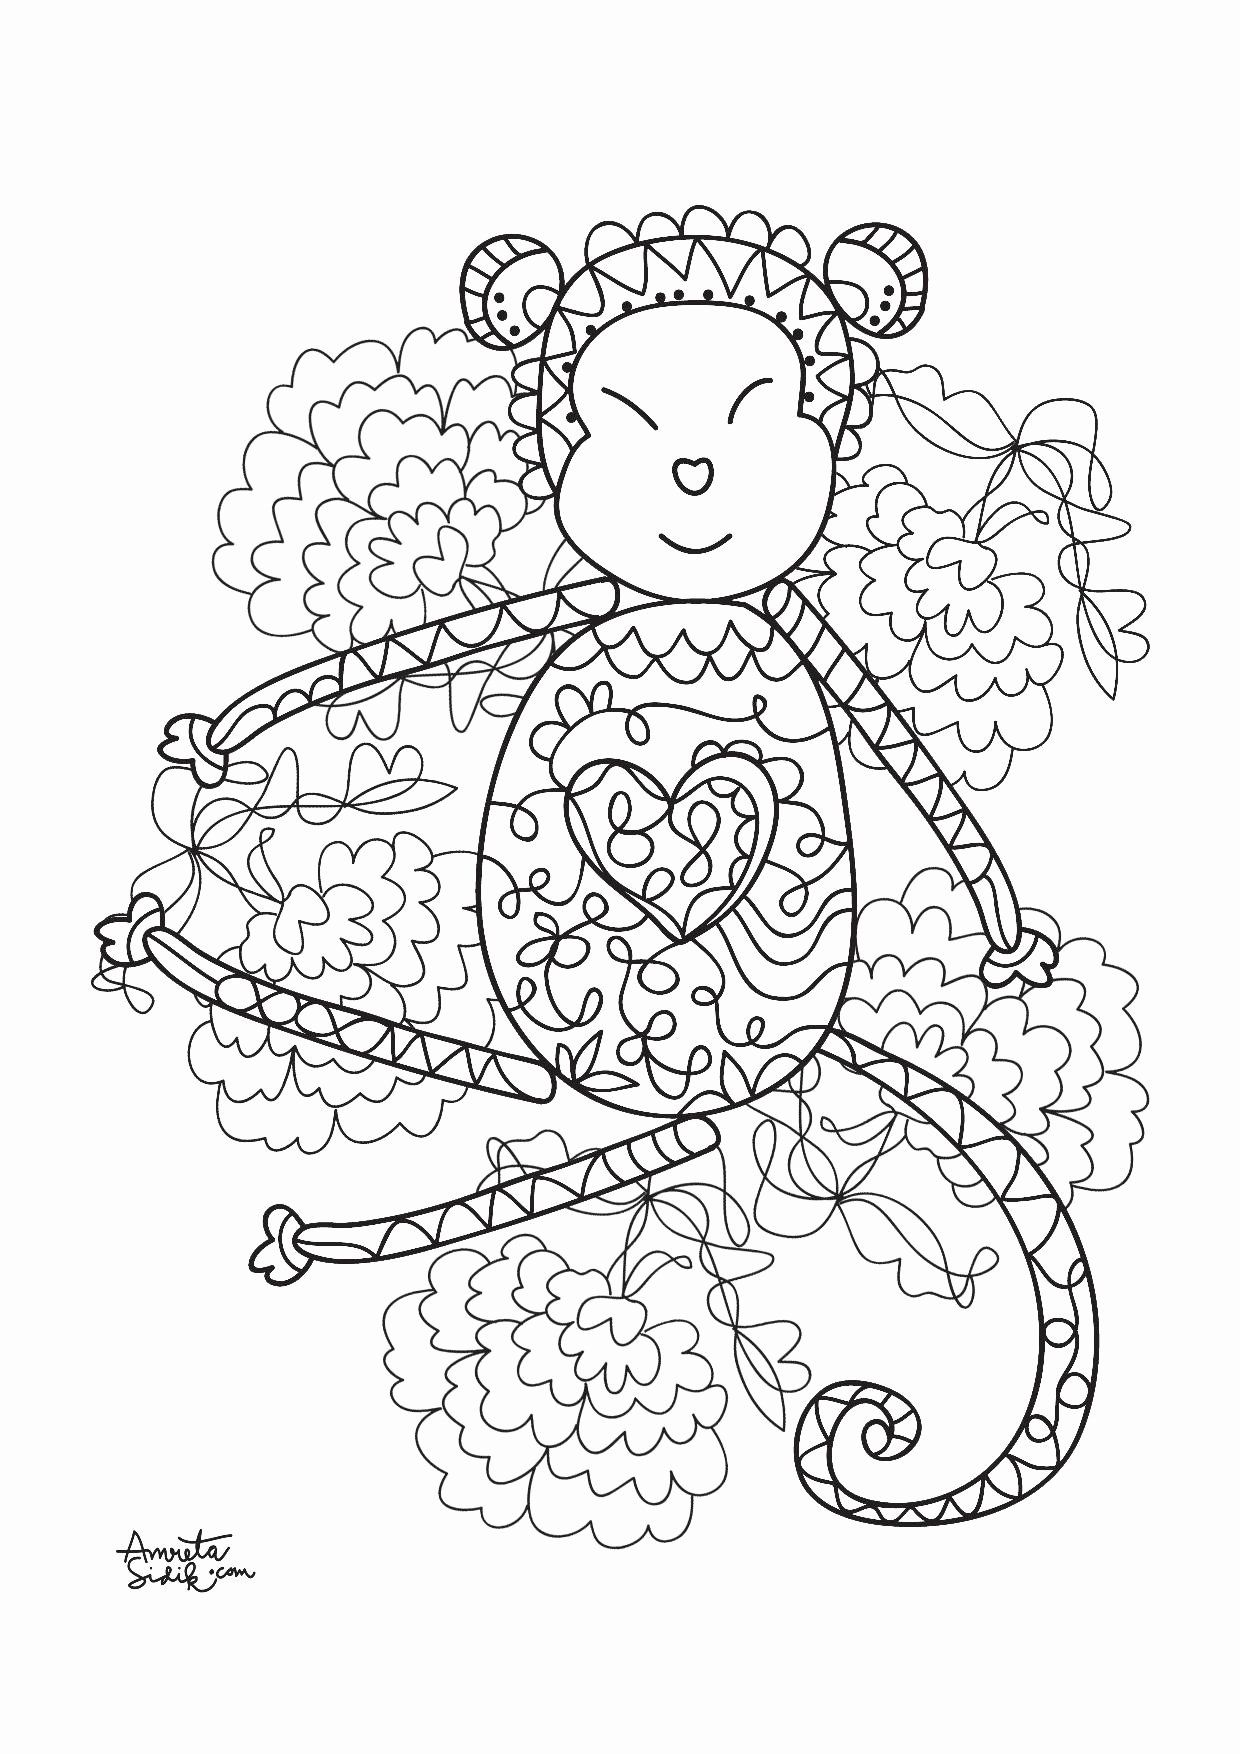 Coloring Pages On Monkeys Best Of Monkey Coloring Pages ...